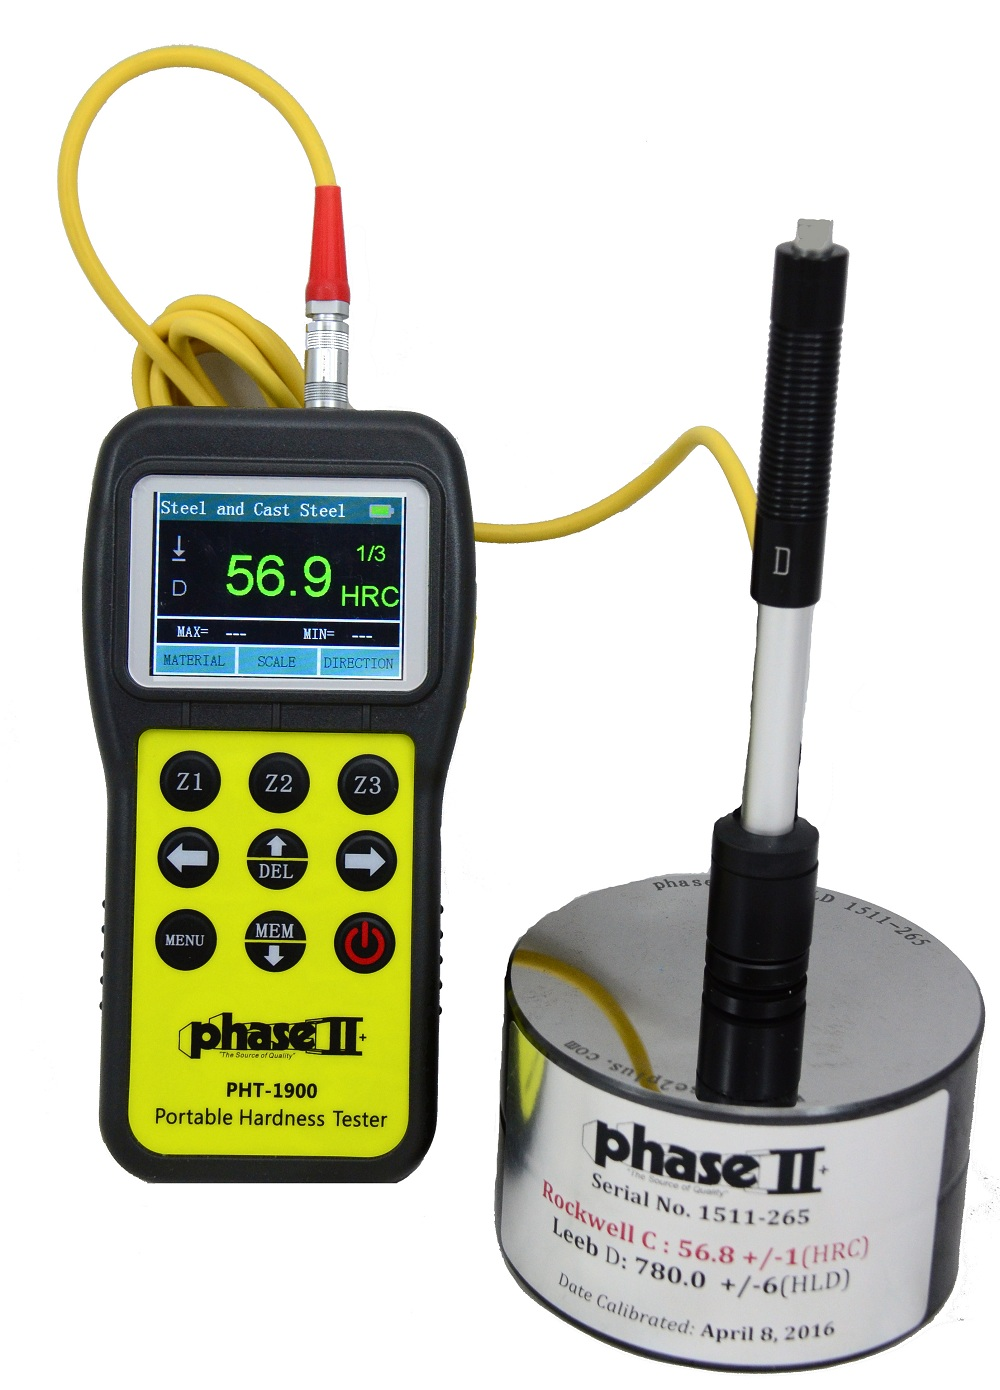 Portable Hardness Tester(PHT-1900)